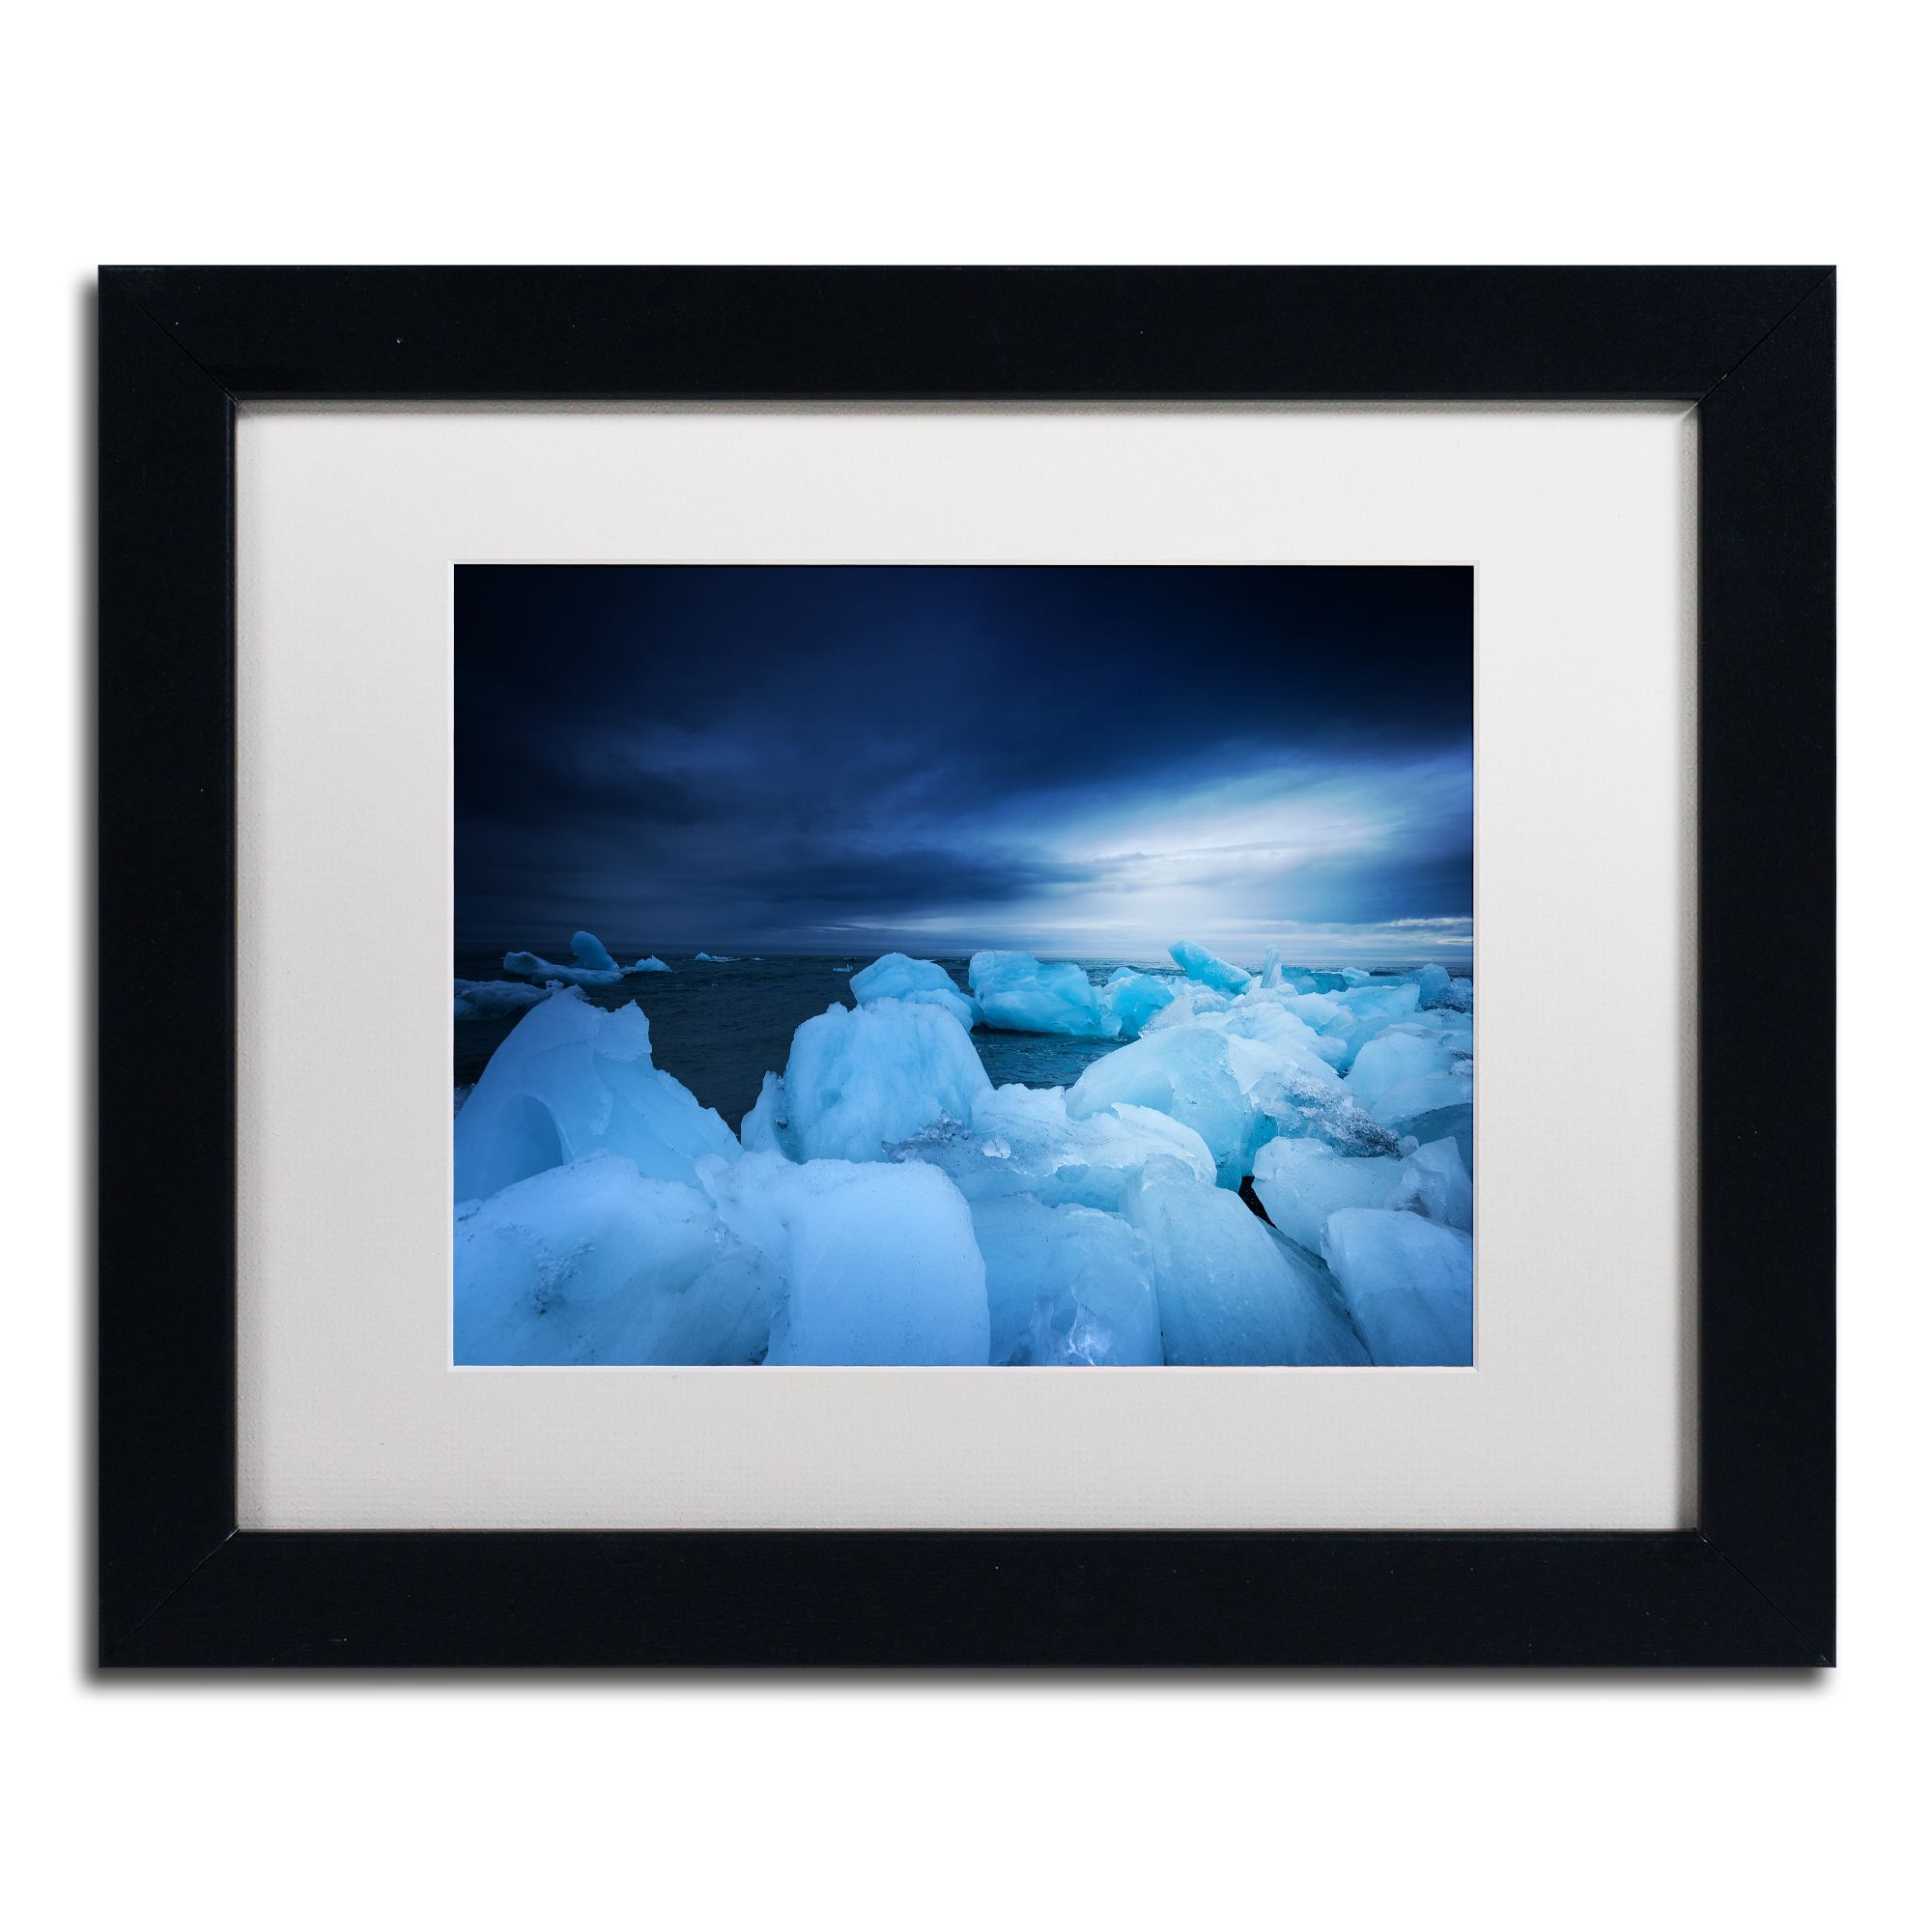 Philippe Sainte-Laudy 'Blue Monday' Matted Framed Art